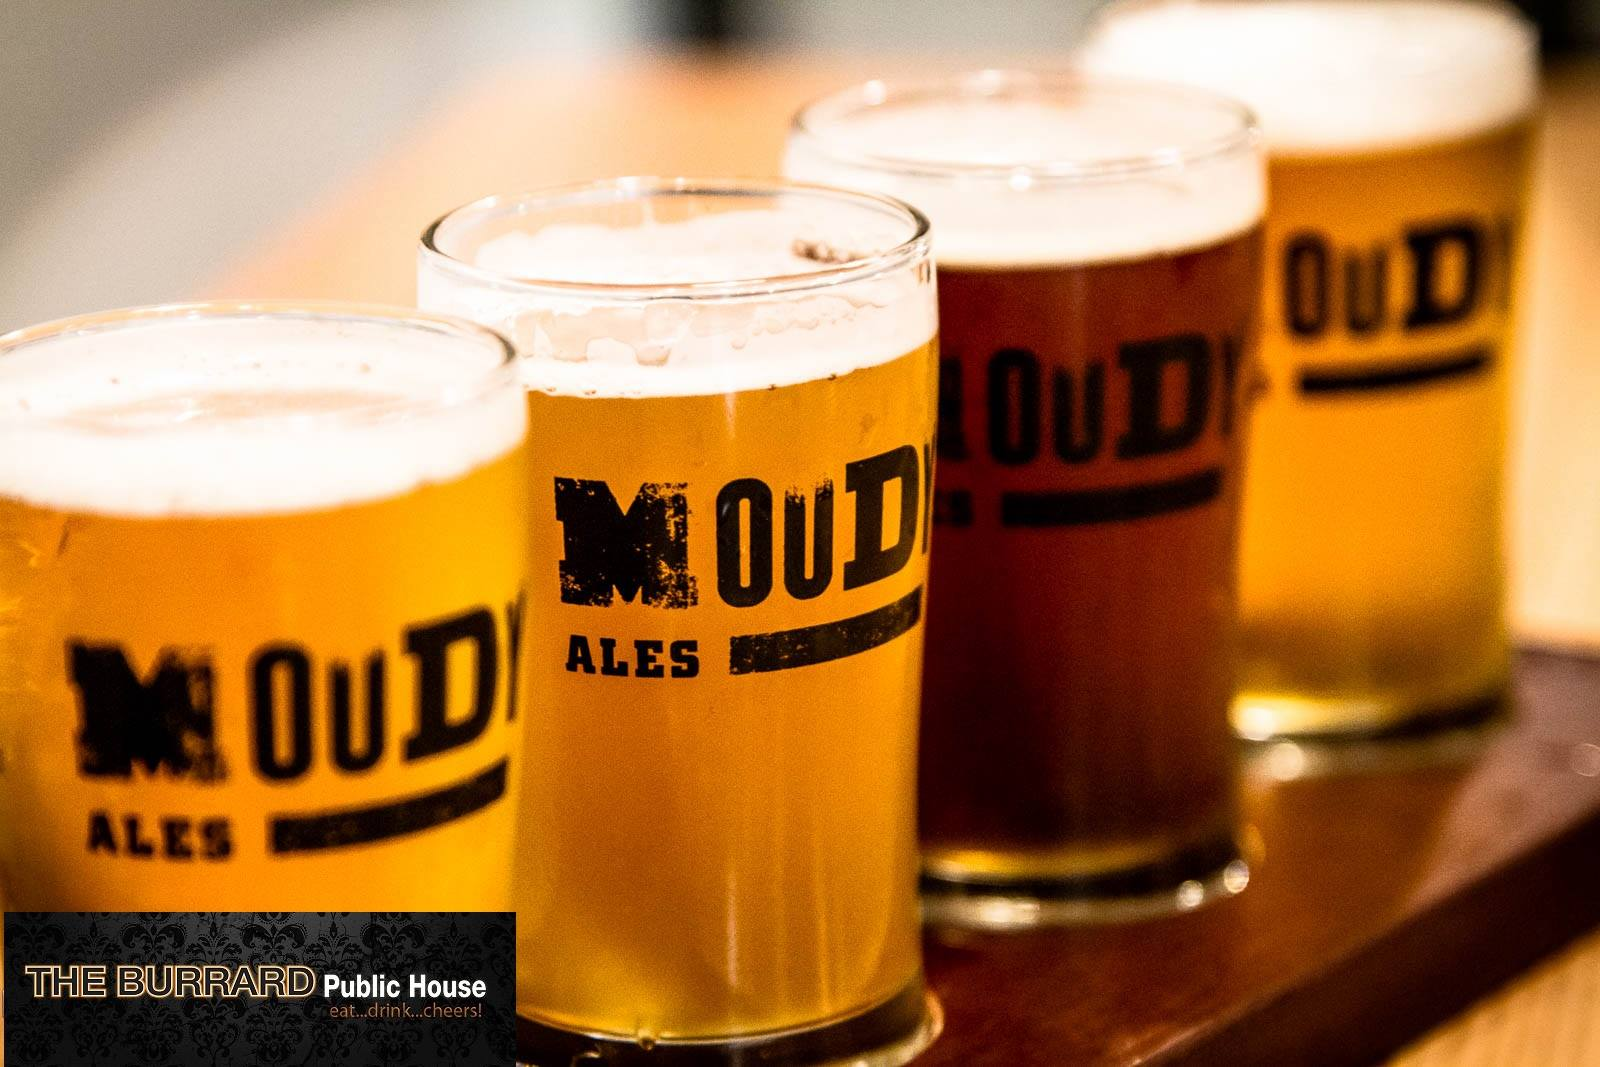 Some of Port Moody's finest ale at The Burrard Public House (The Burrard Public House/Facebook)